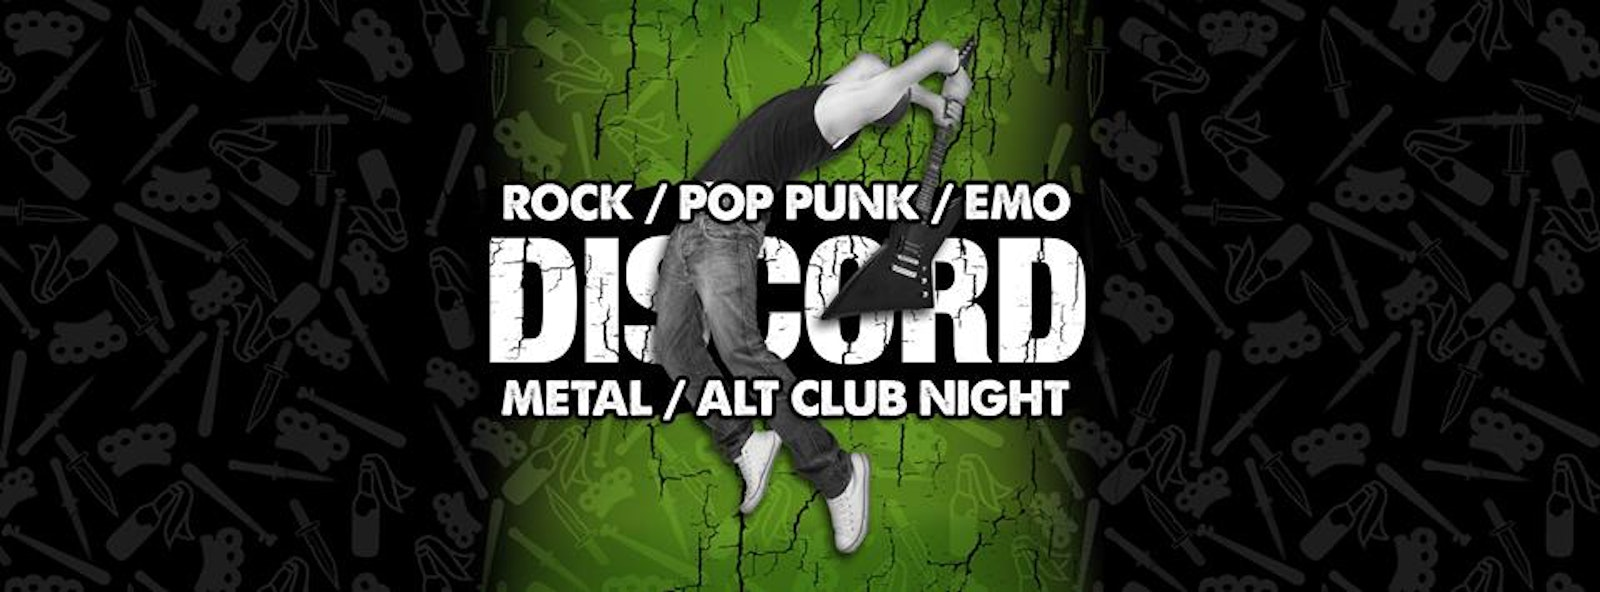 DISCORD – Rock, Pop Punk, Emo, & Metal!